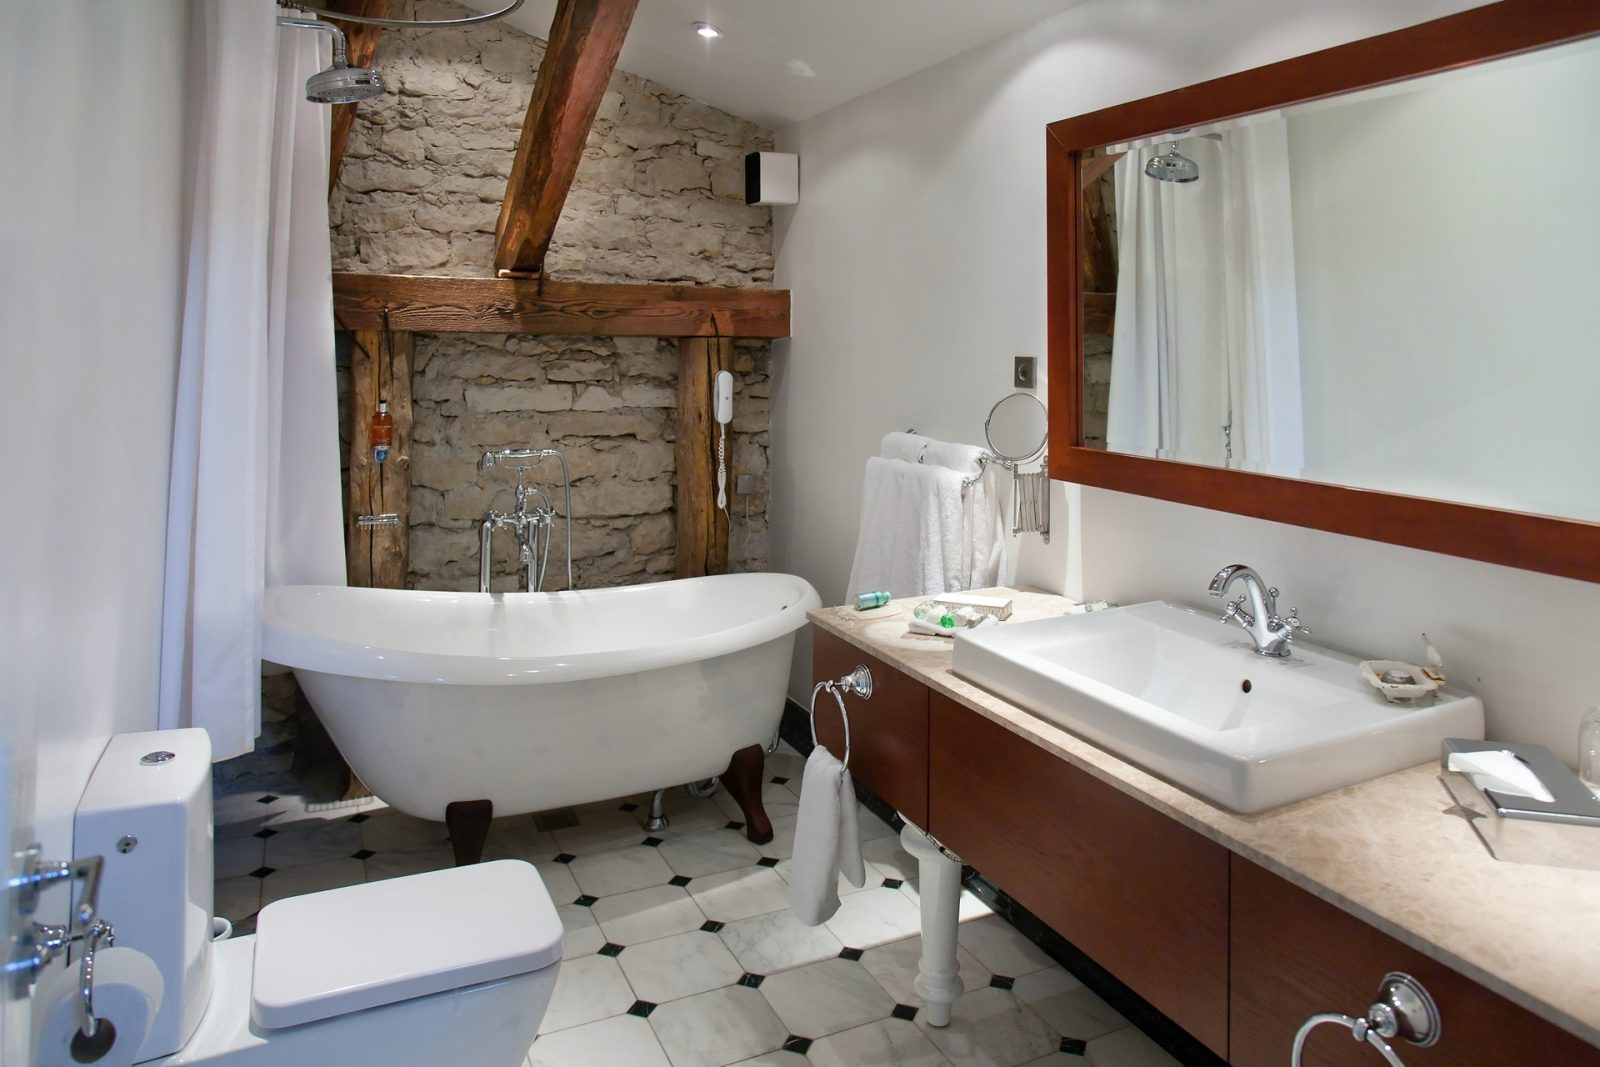 A hotel bathroom Renovating or updating your bathroom